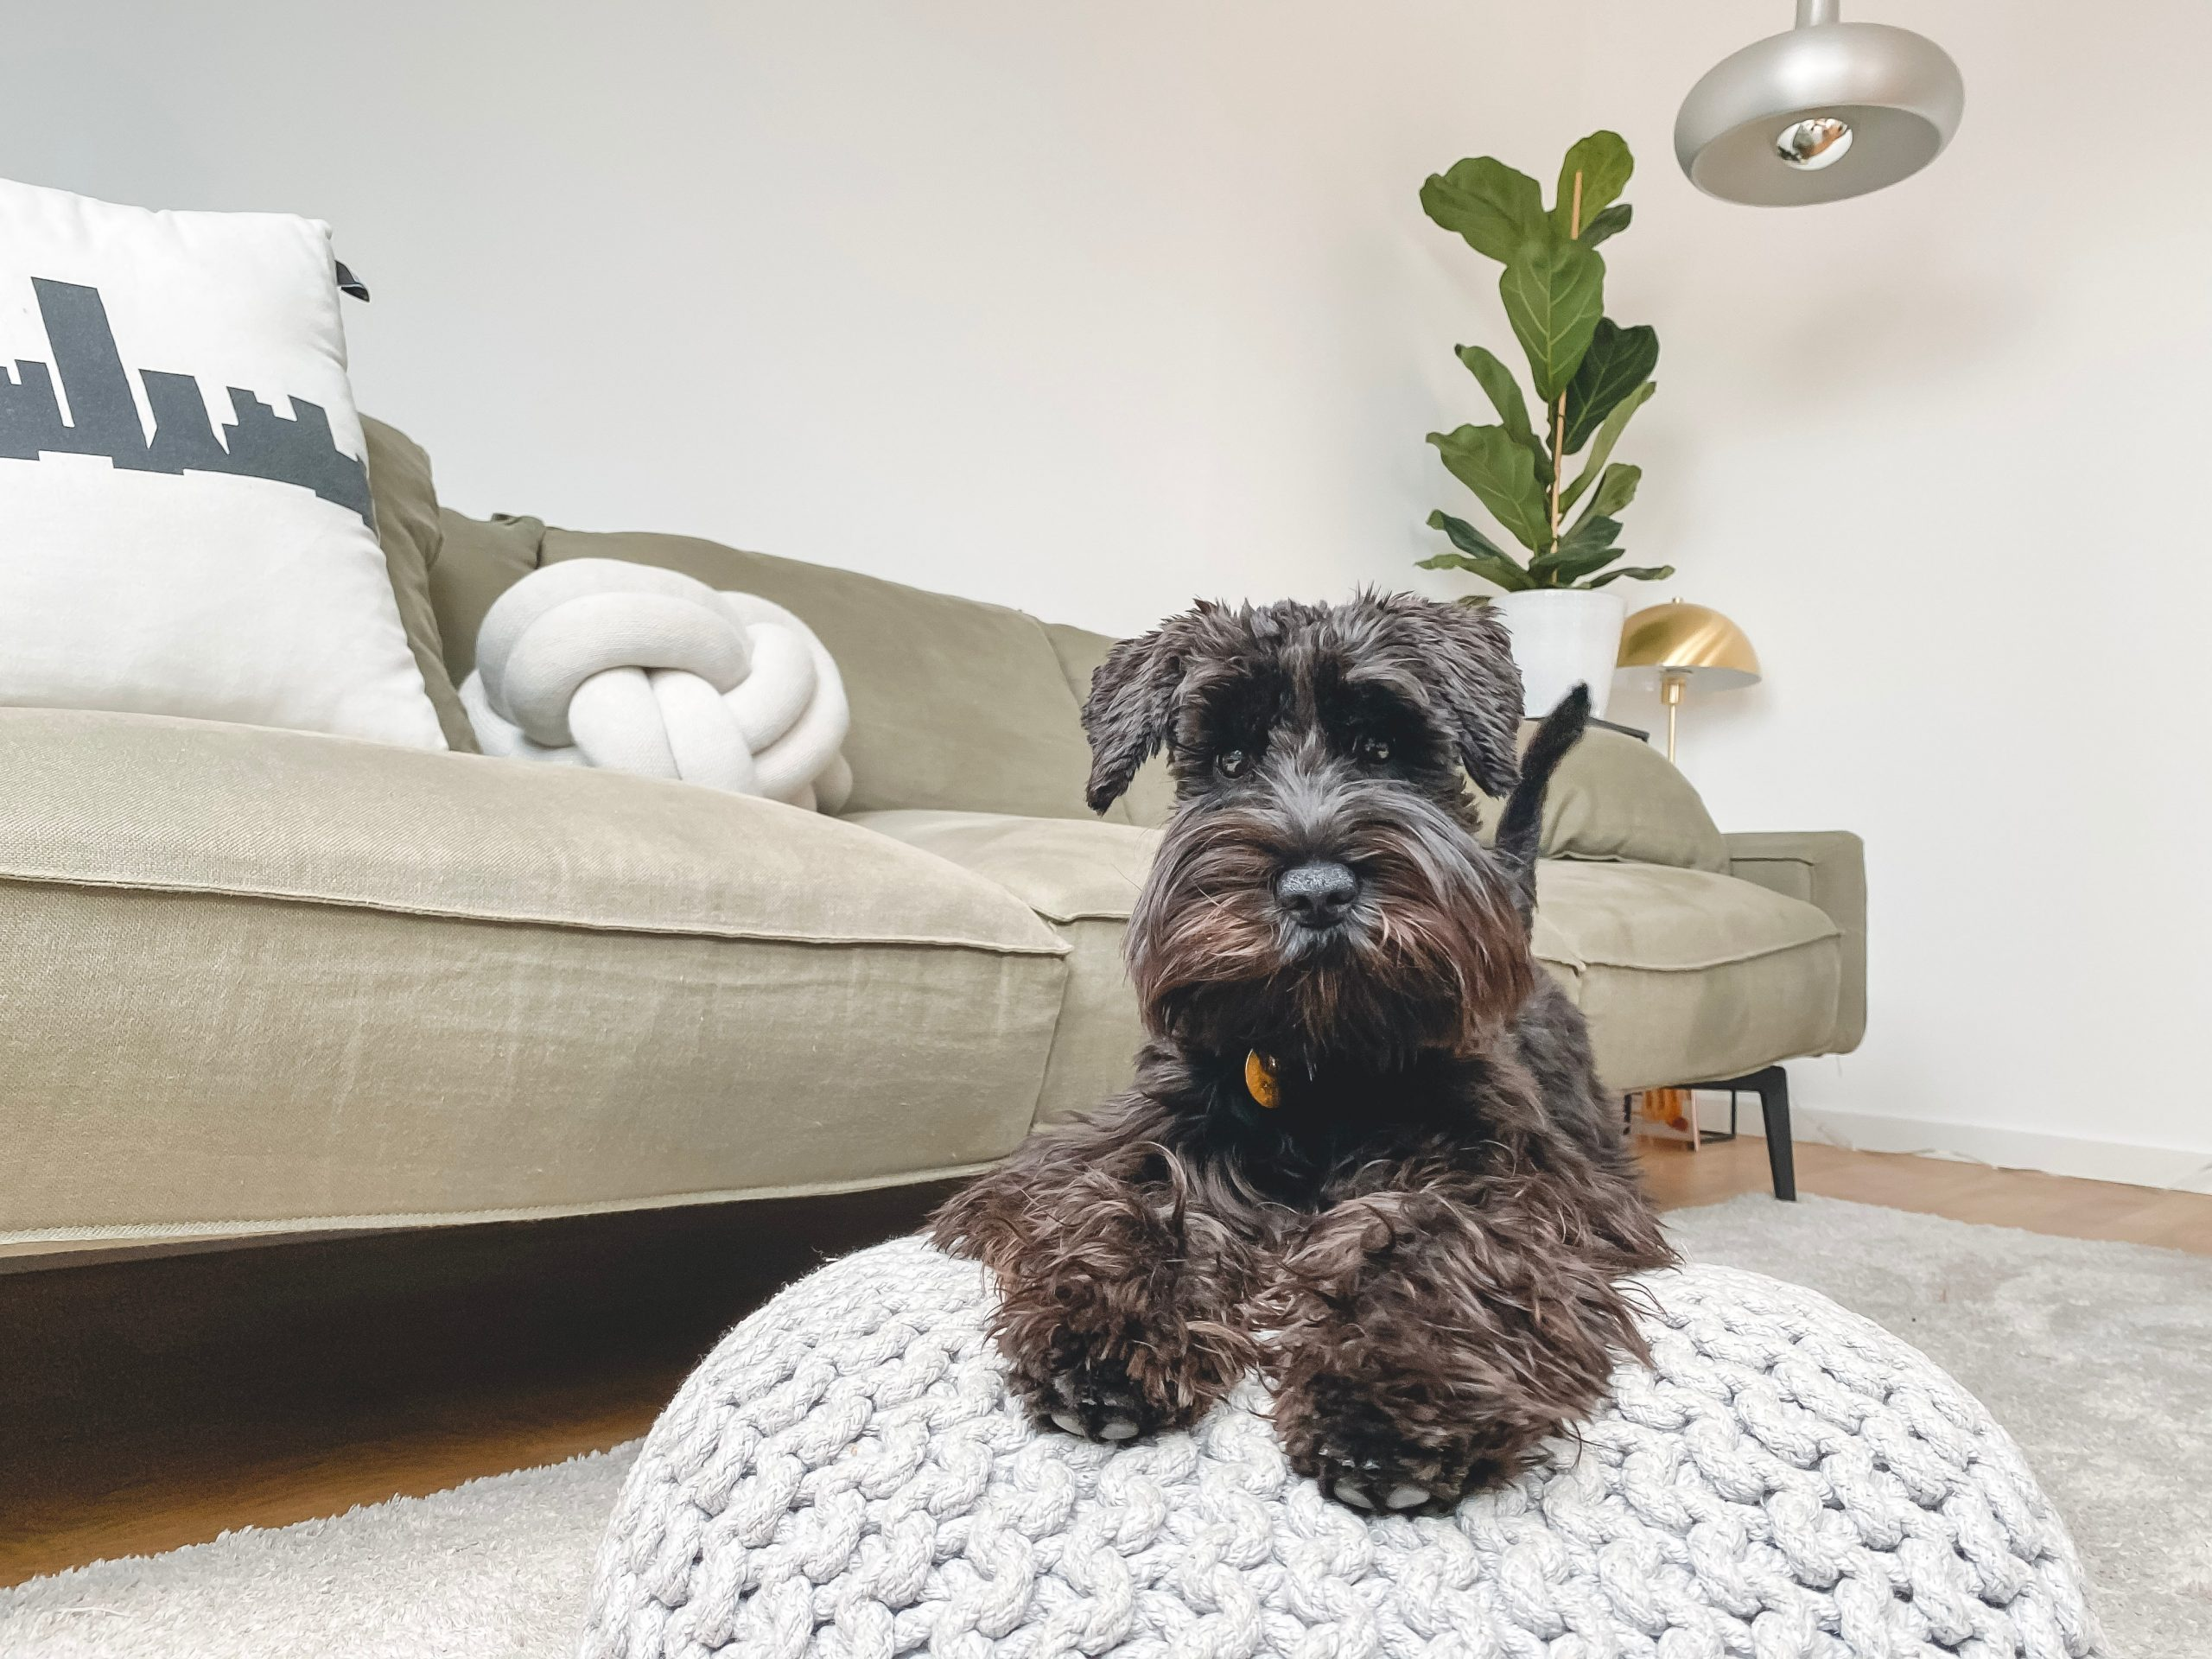 Tips For Owning A Dog When You Work Long Hours